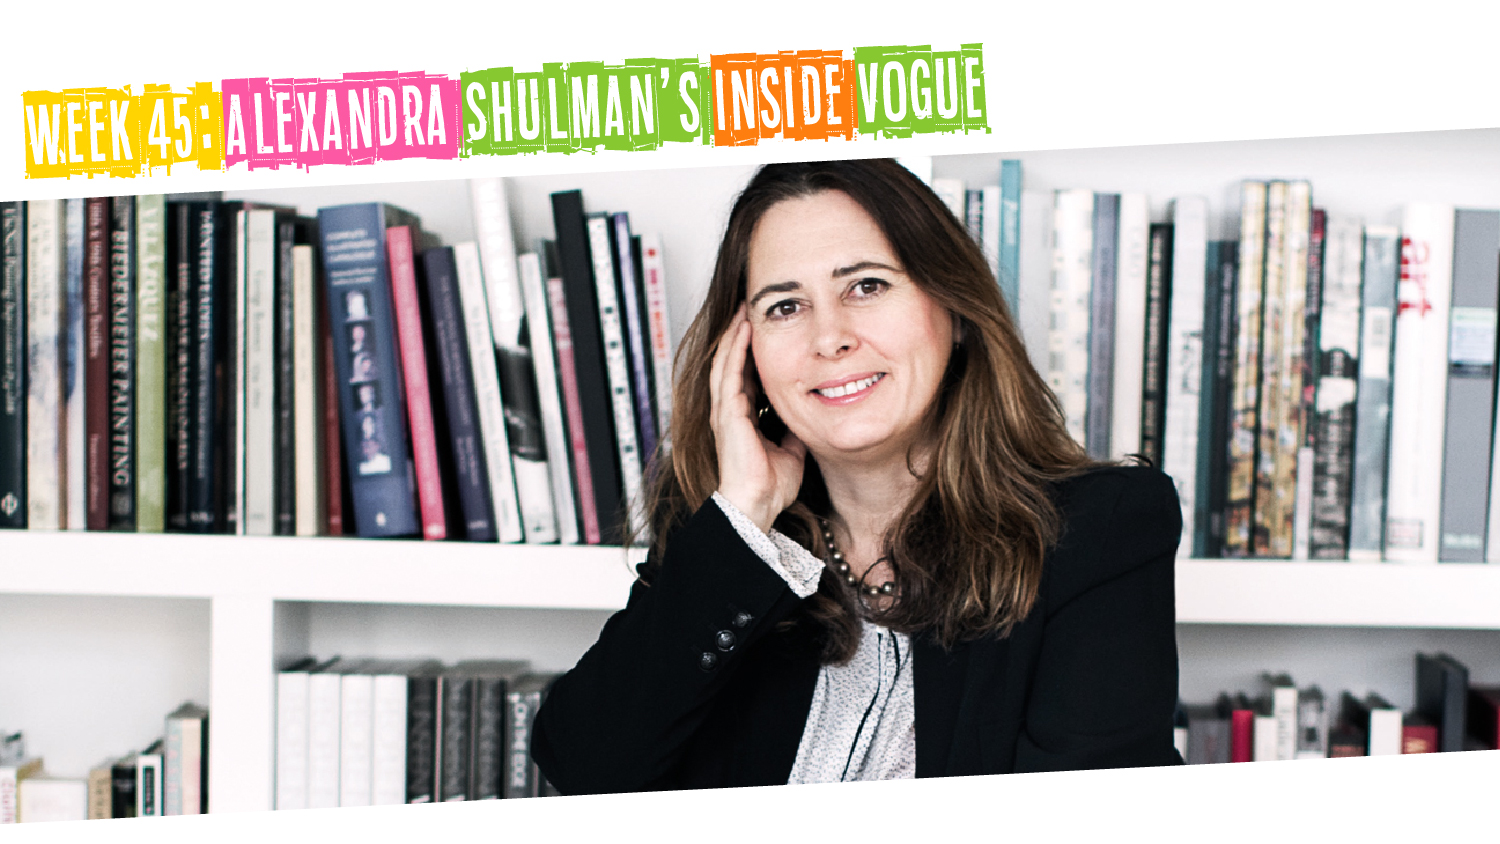 IYM Week 45: Alexandra Shulman's Inside Vogue